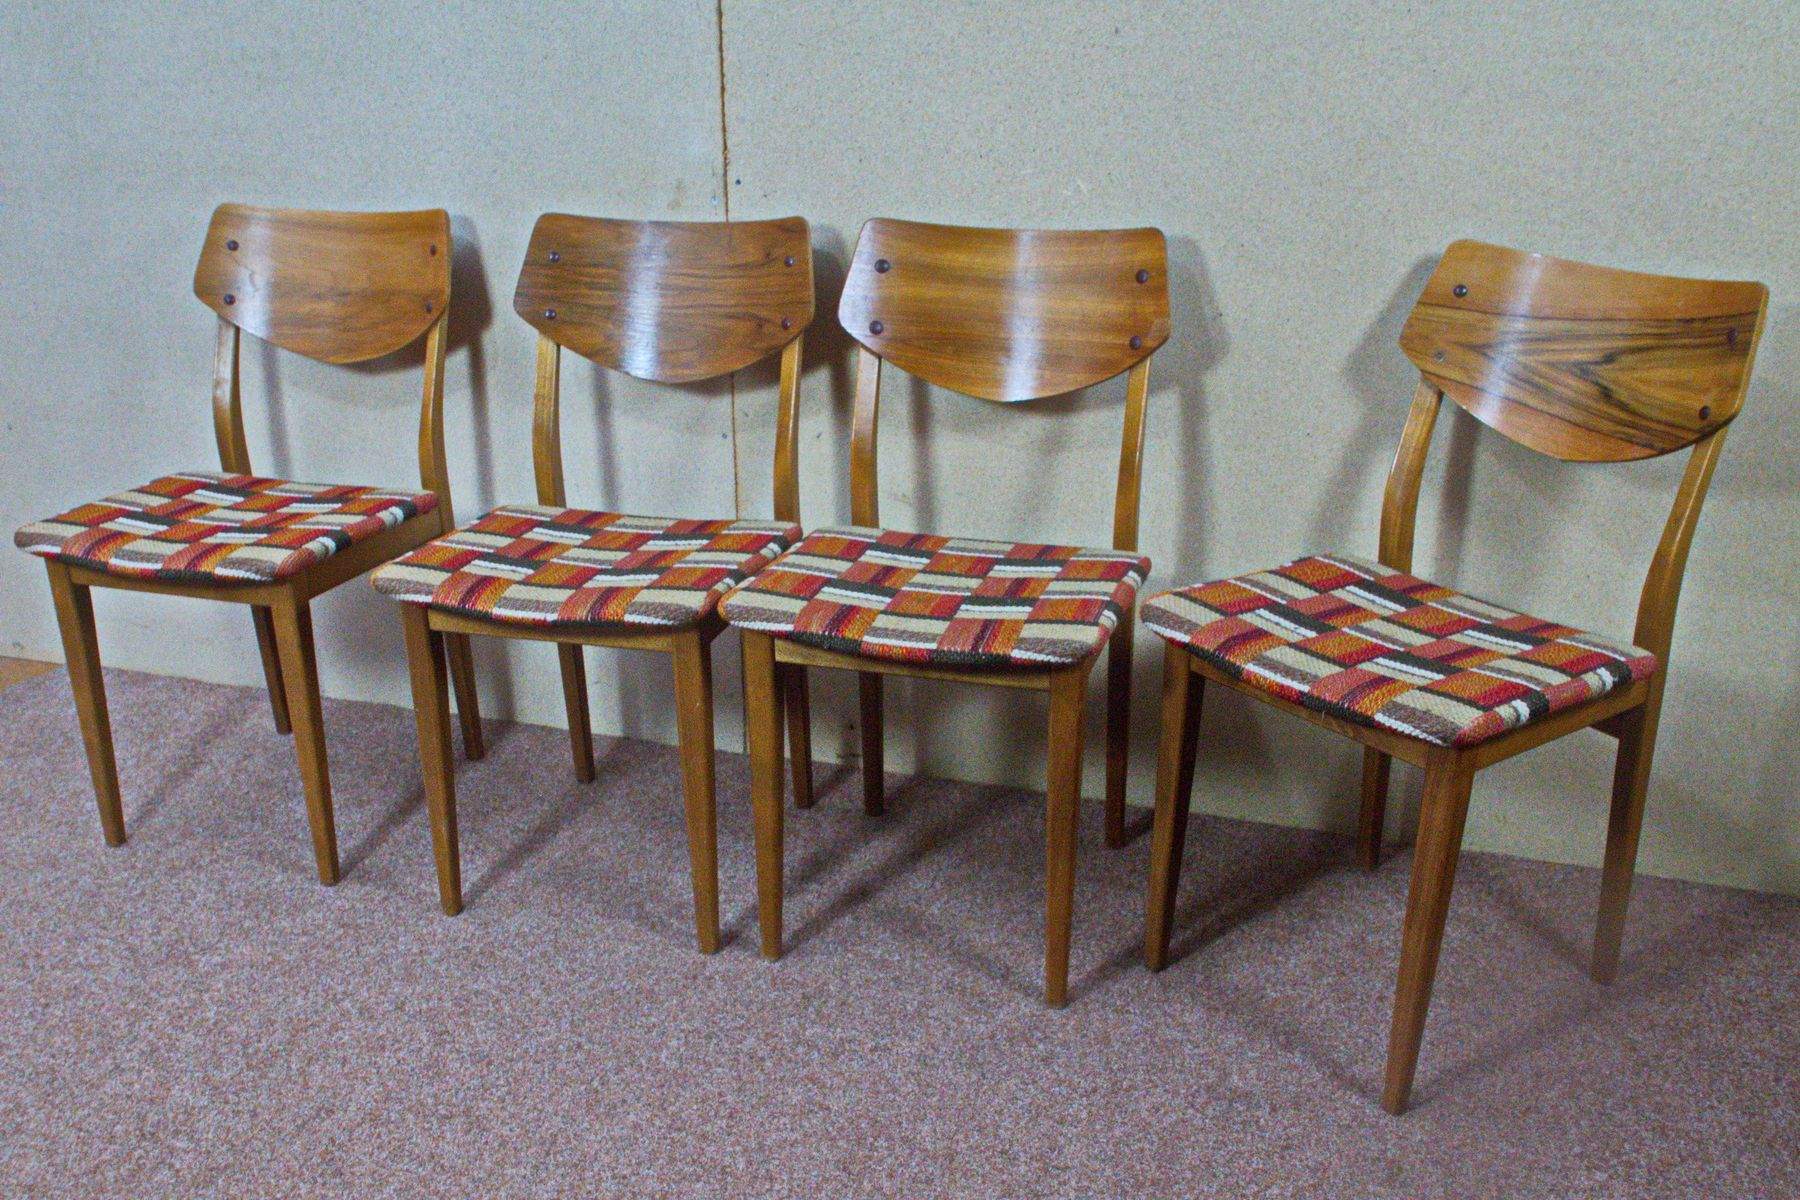 German Walnut Dining Chairs with Checkered Upholstery 1960s Set